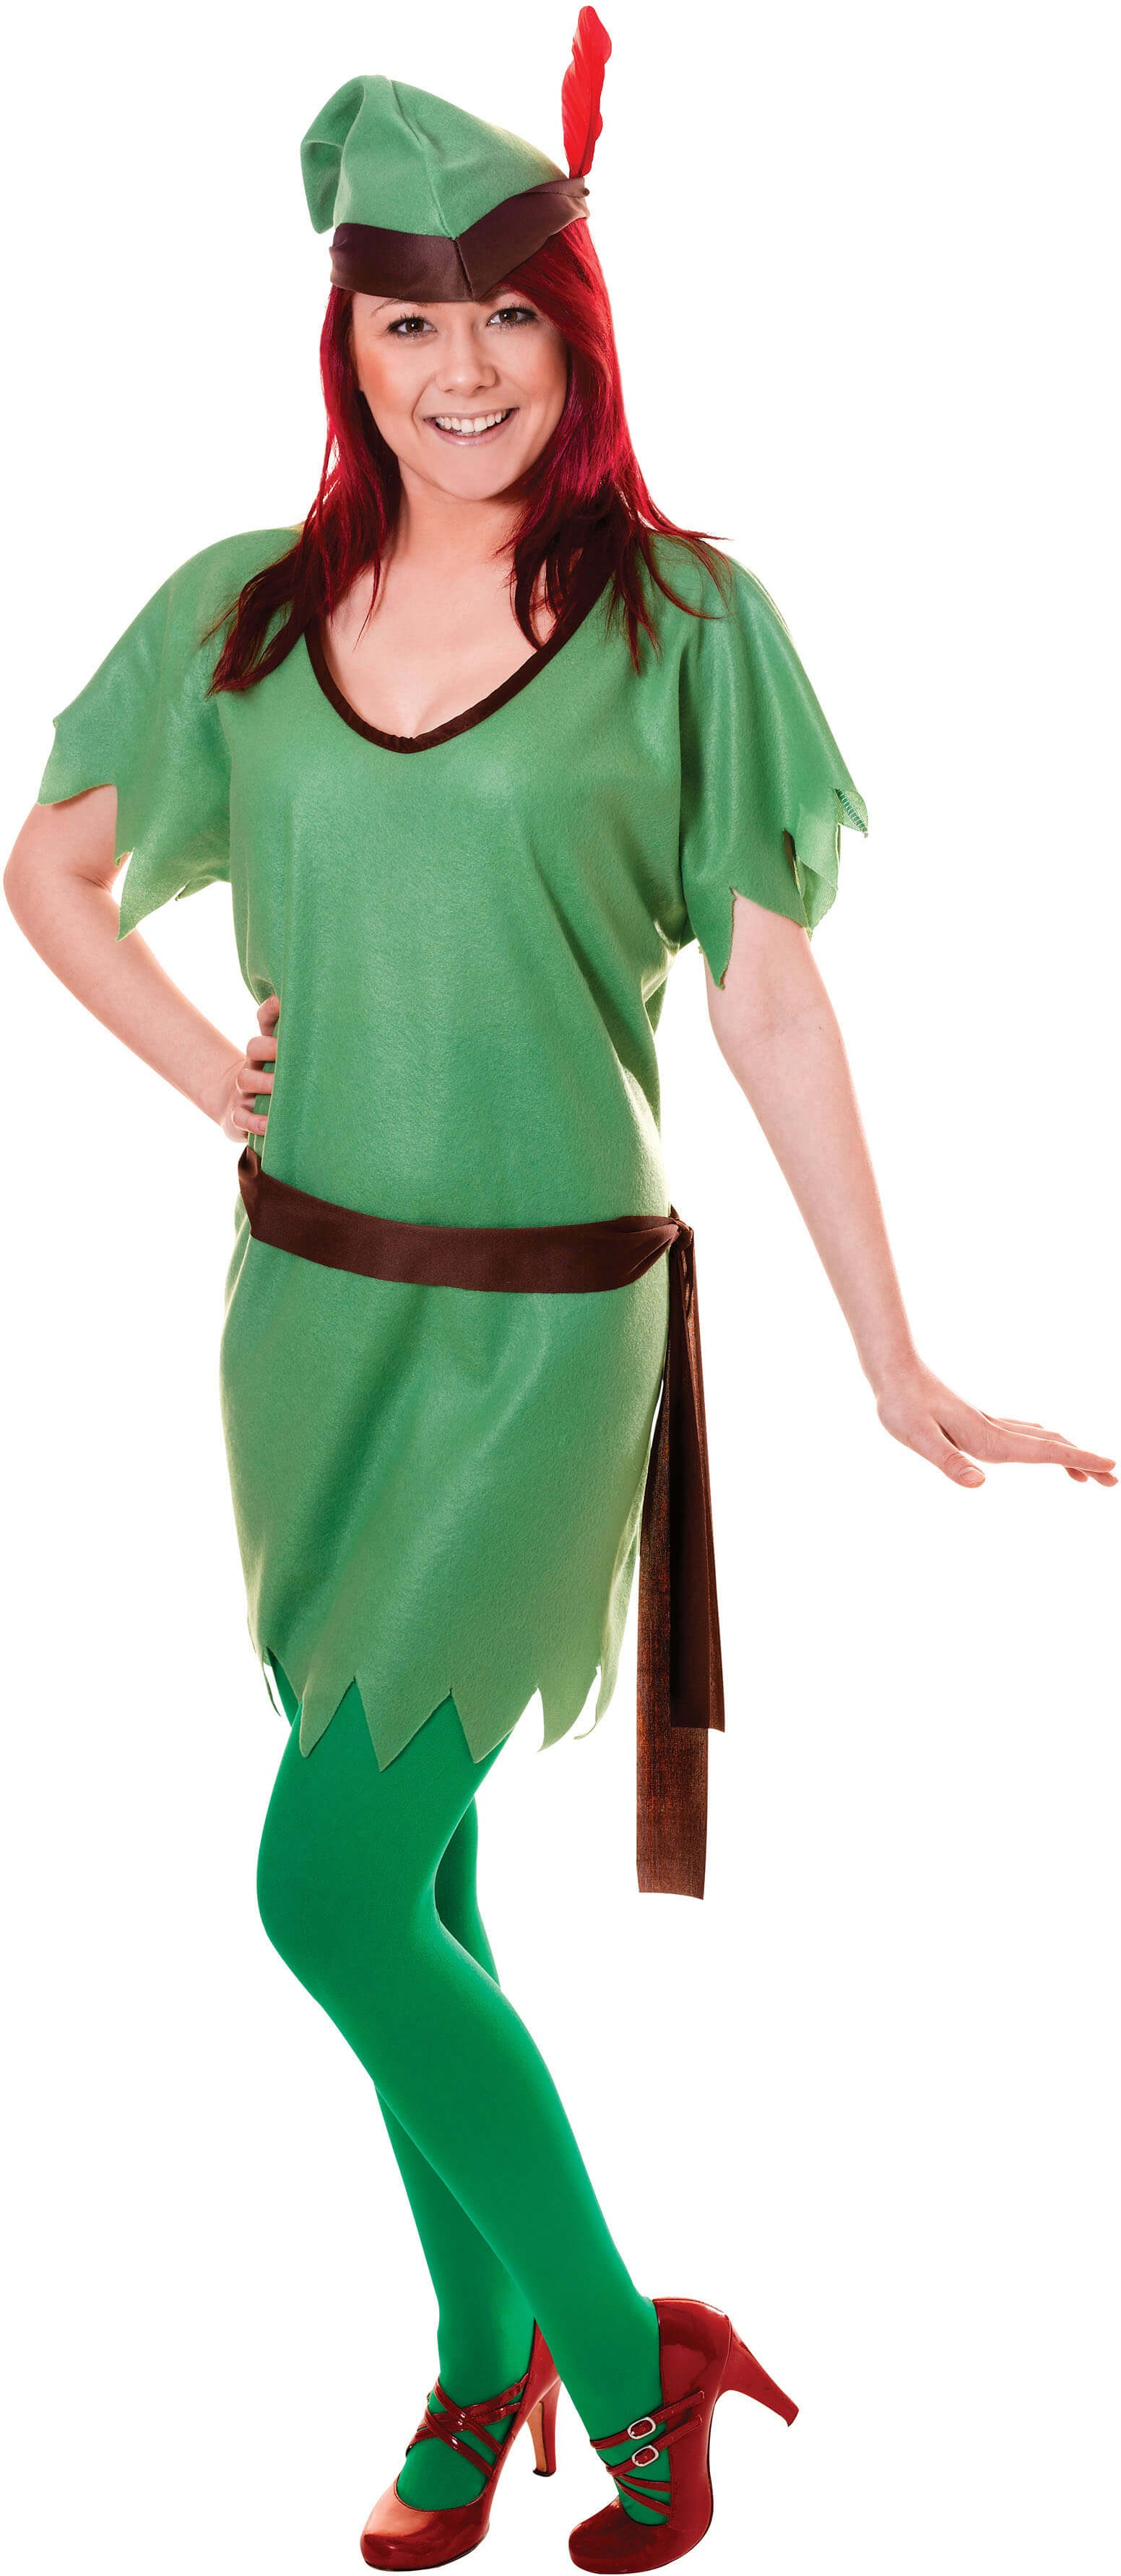 Buy Robin Hood/Elf Fancy Dress Costume - Largest online fancy dress range in the UK - Price Guarantee u0026 FREE Delivery  sc 1 st  Fun Fancy Dress & Buy Robin Hood/Elf Fancy Dress Costume - Largest online fancy dress ...